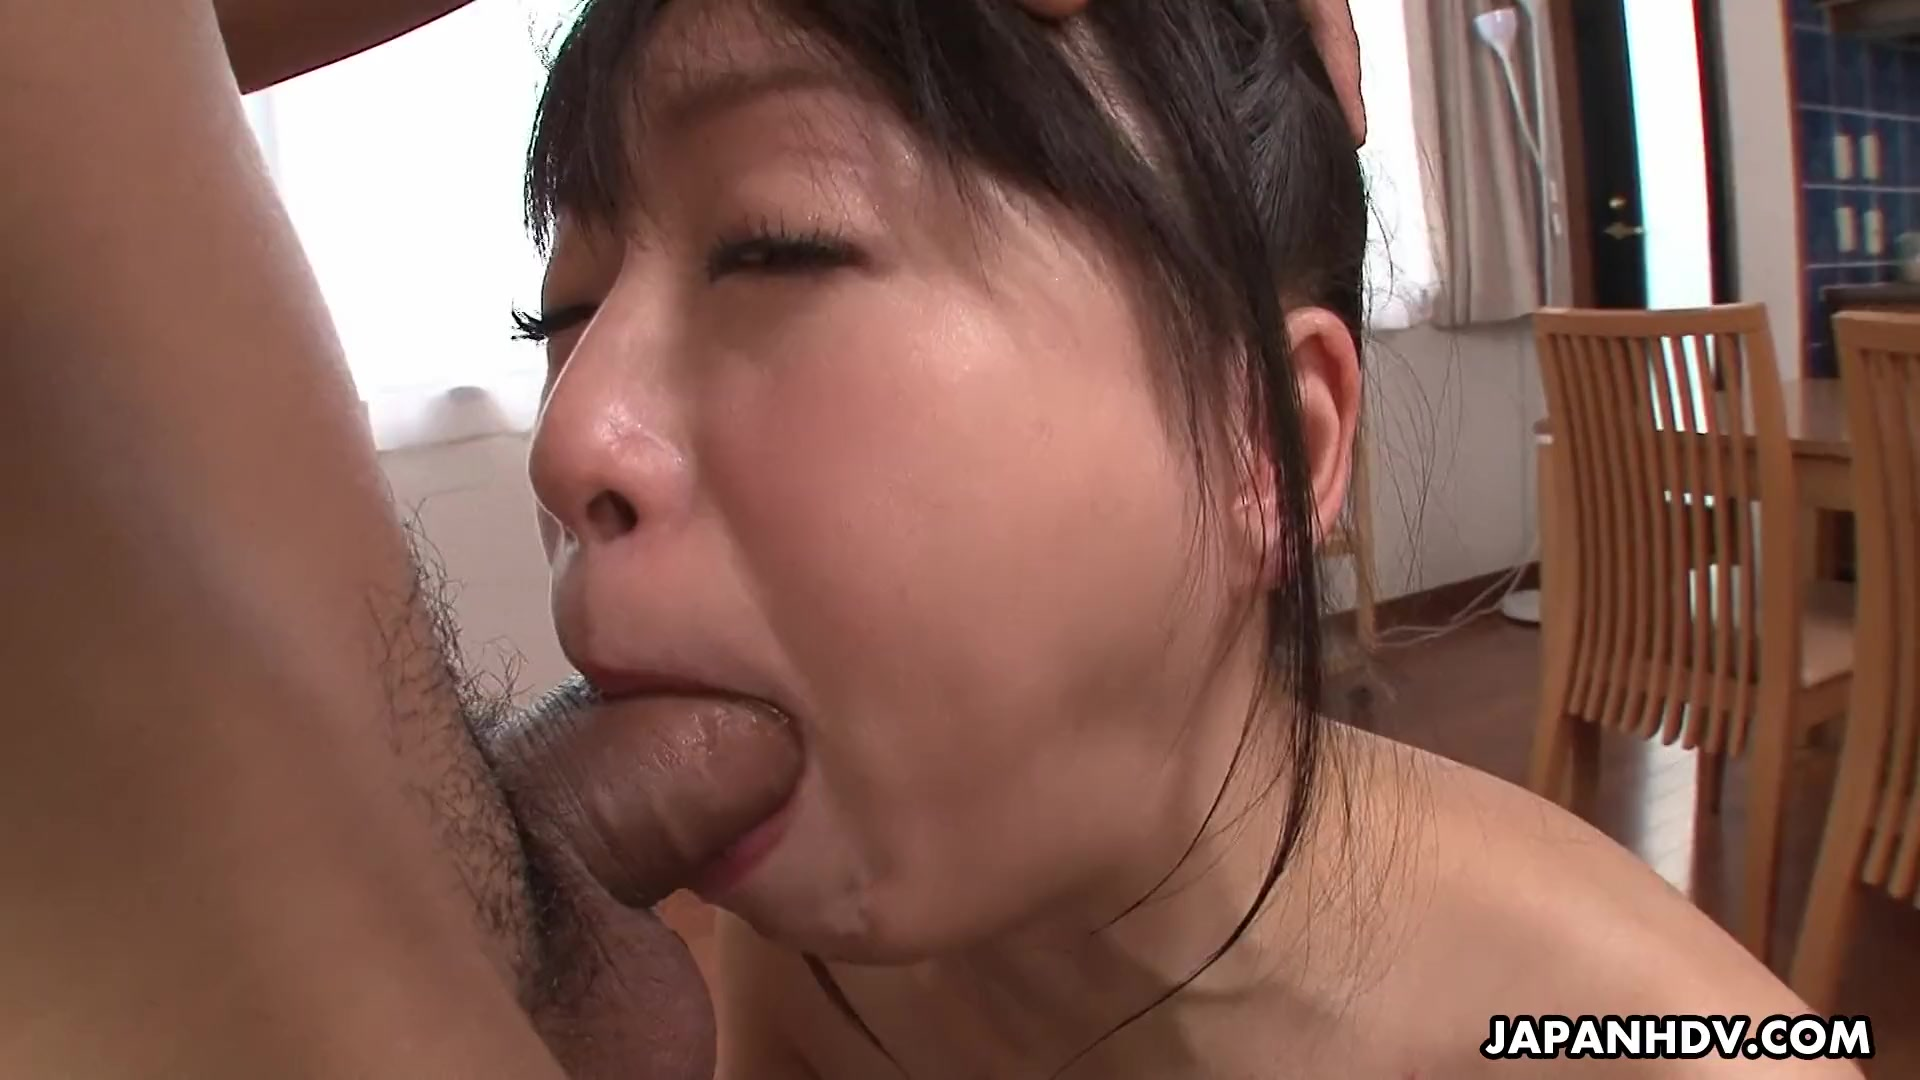 Slobbering all over the cock then the sixty nine rocks 3